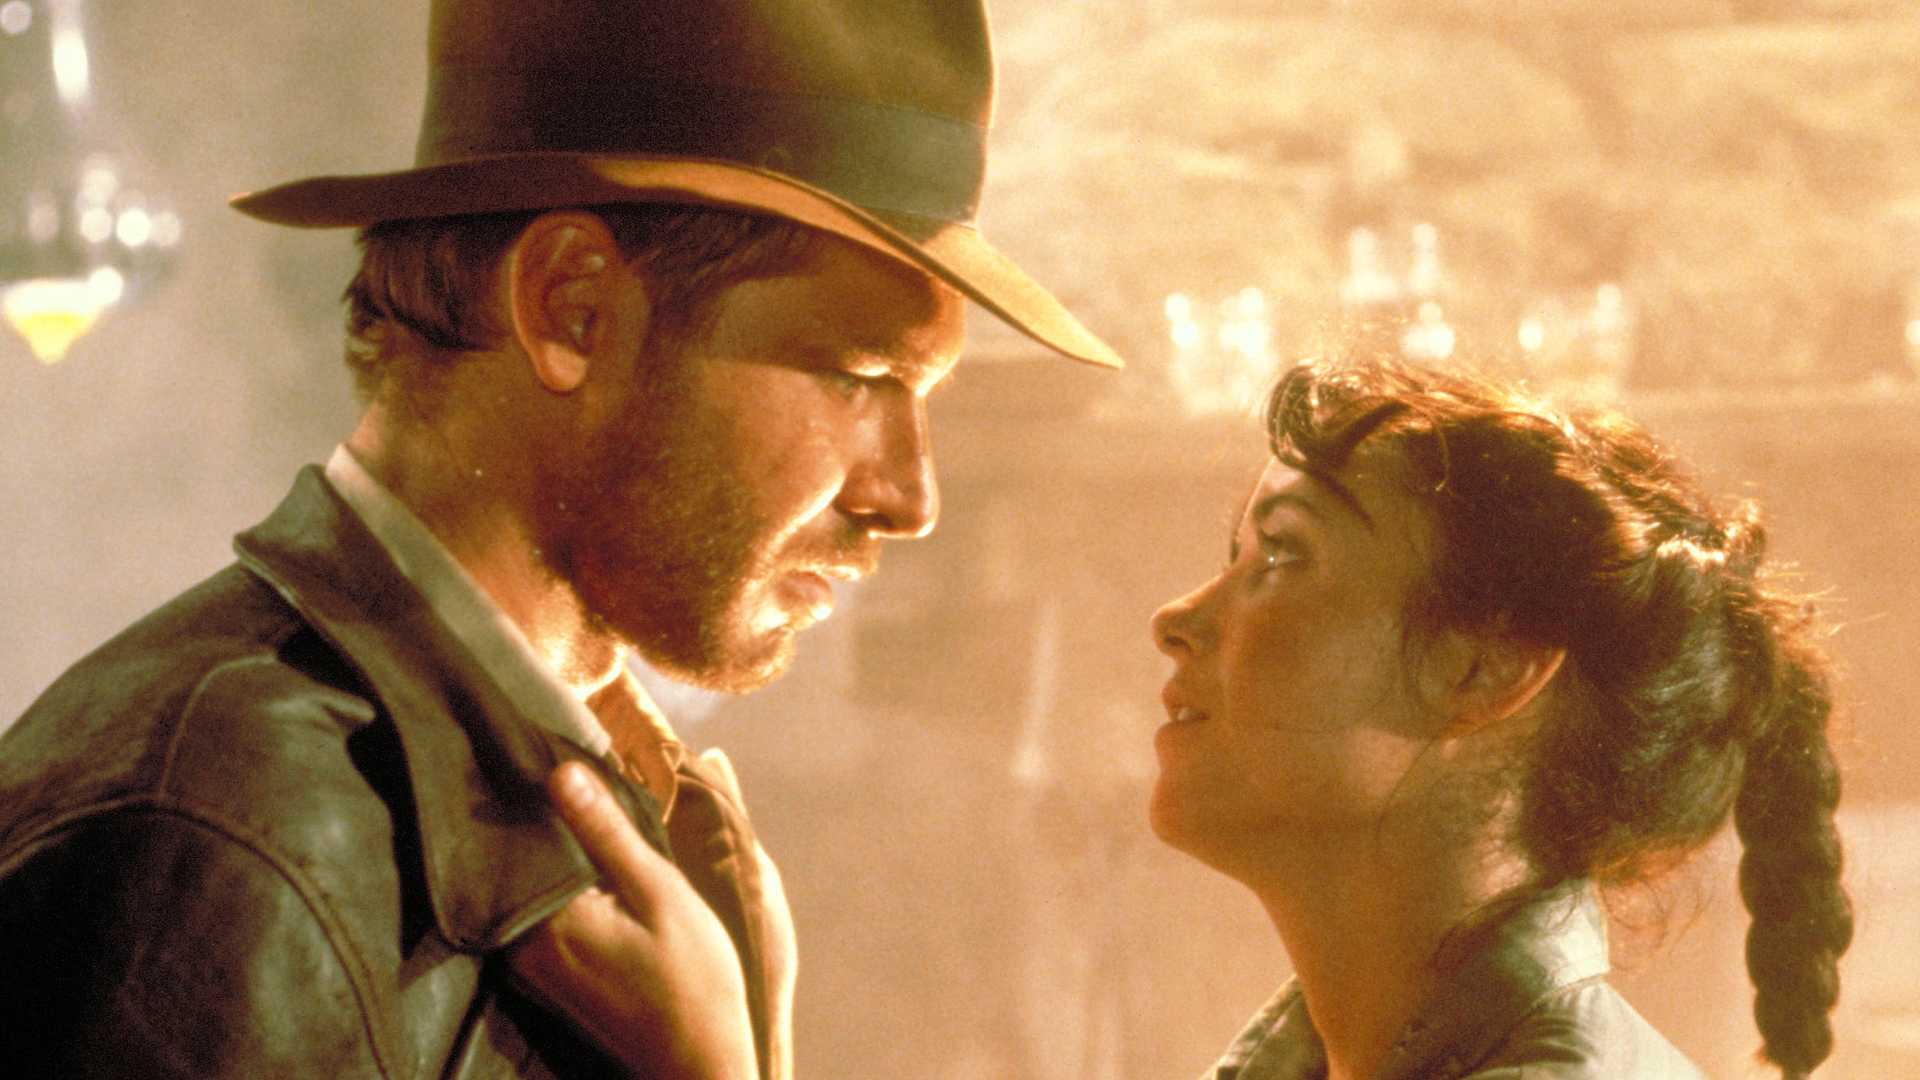 Raiders Lost Ark Belloq Quotes Raiders of The Lost Ark